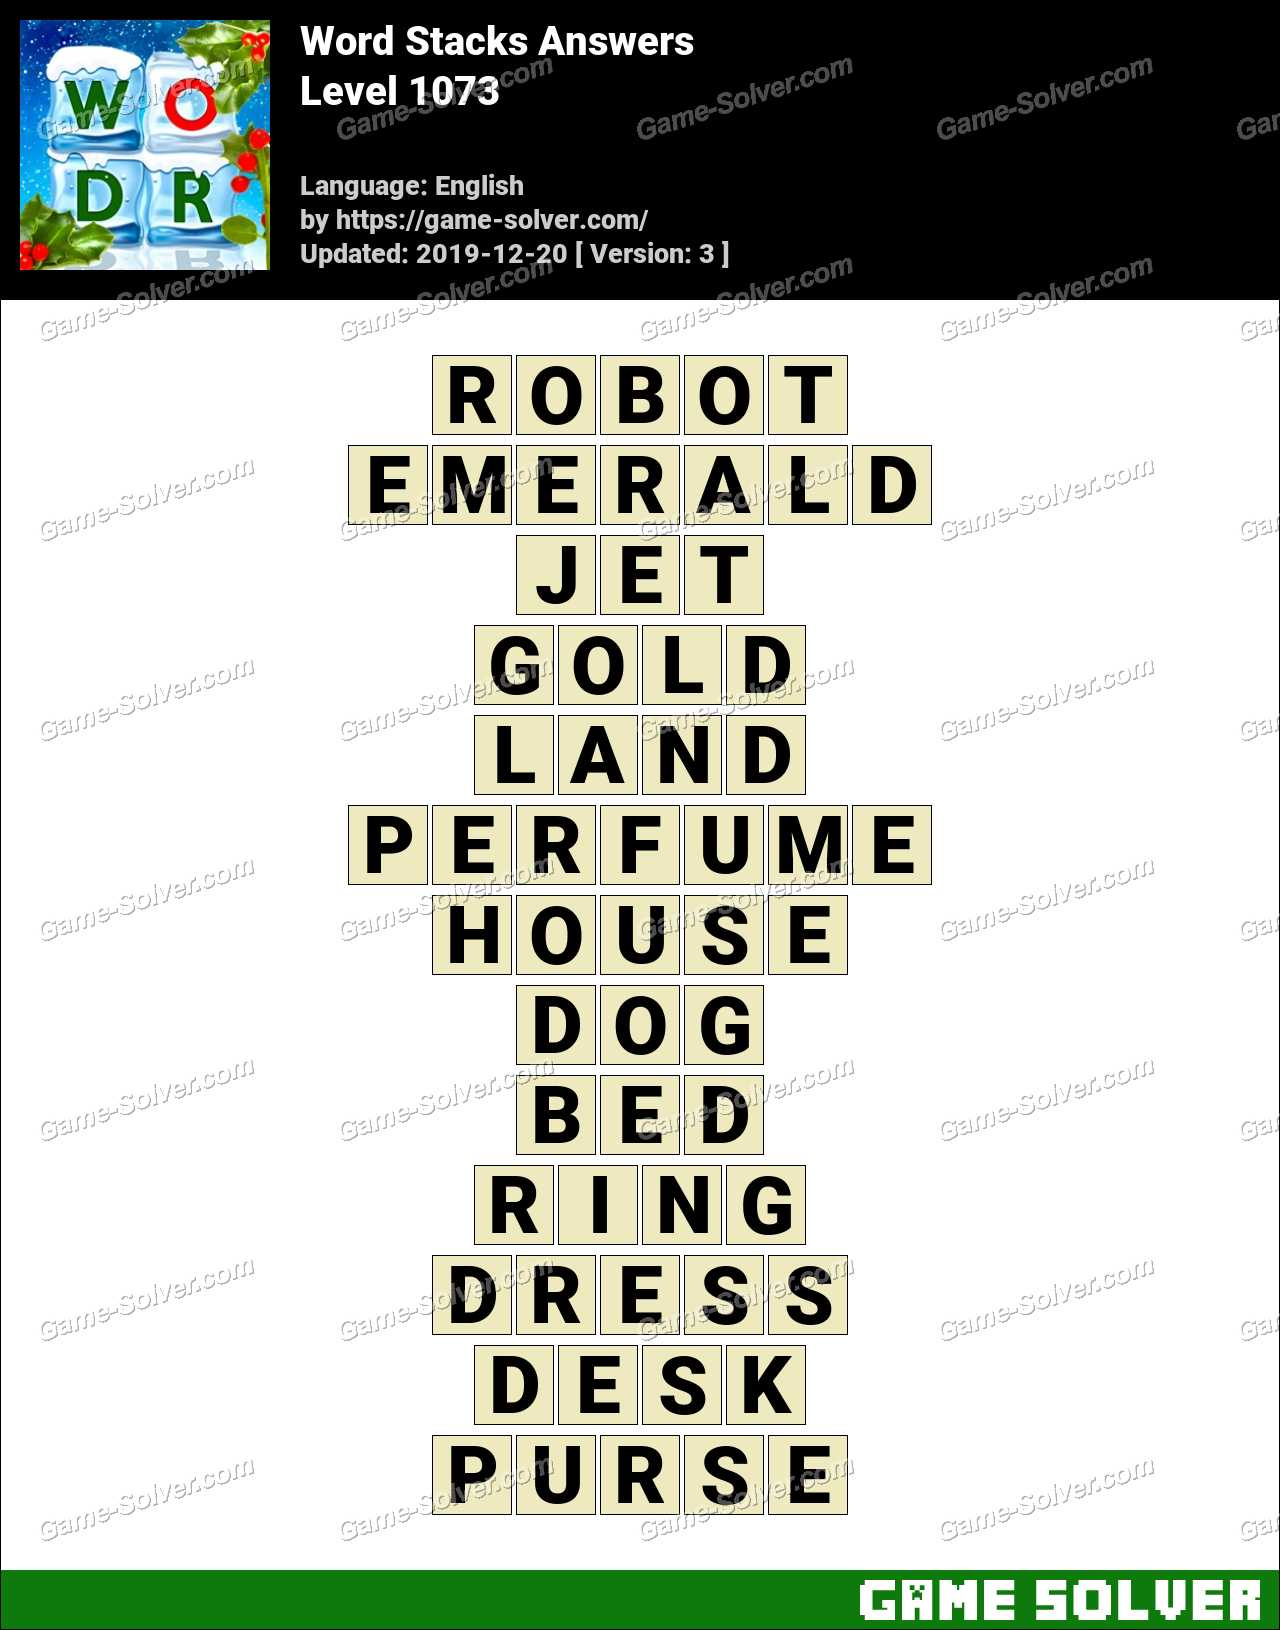 Word Stacks Level 1073 Answers